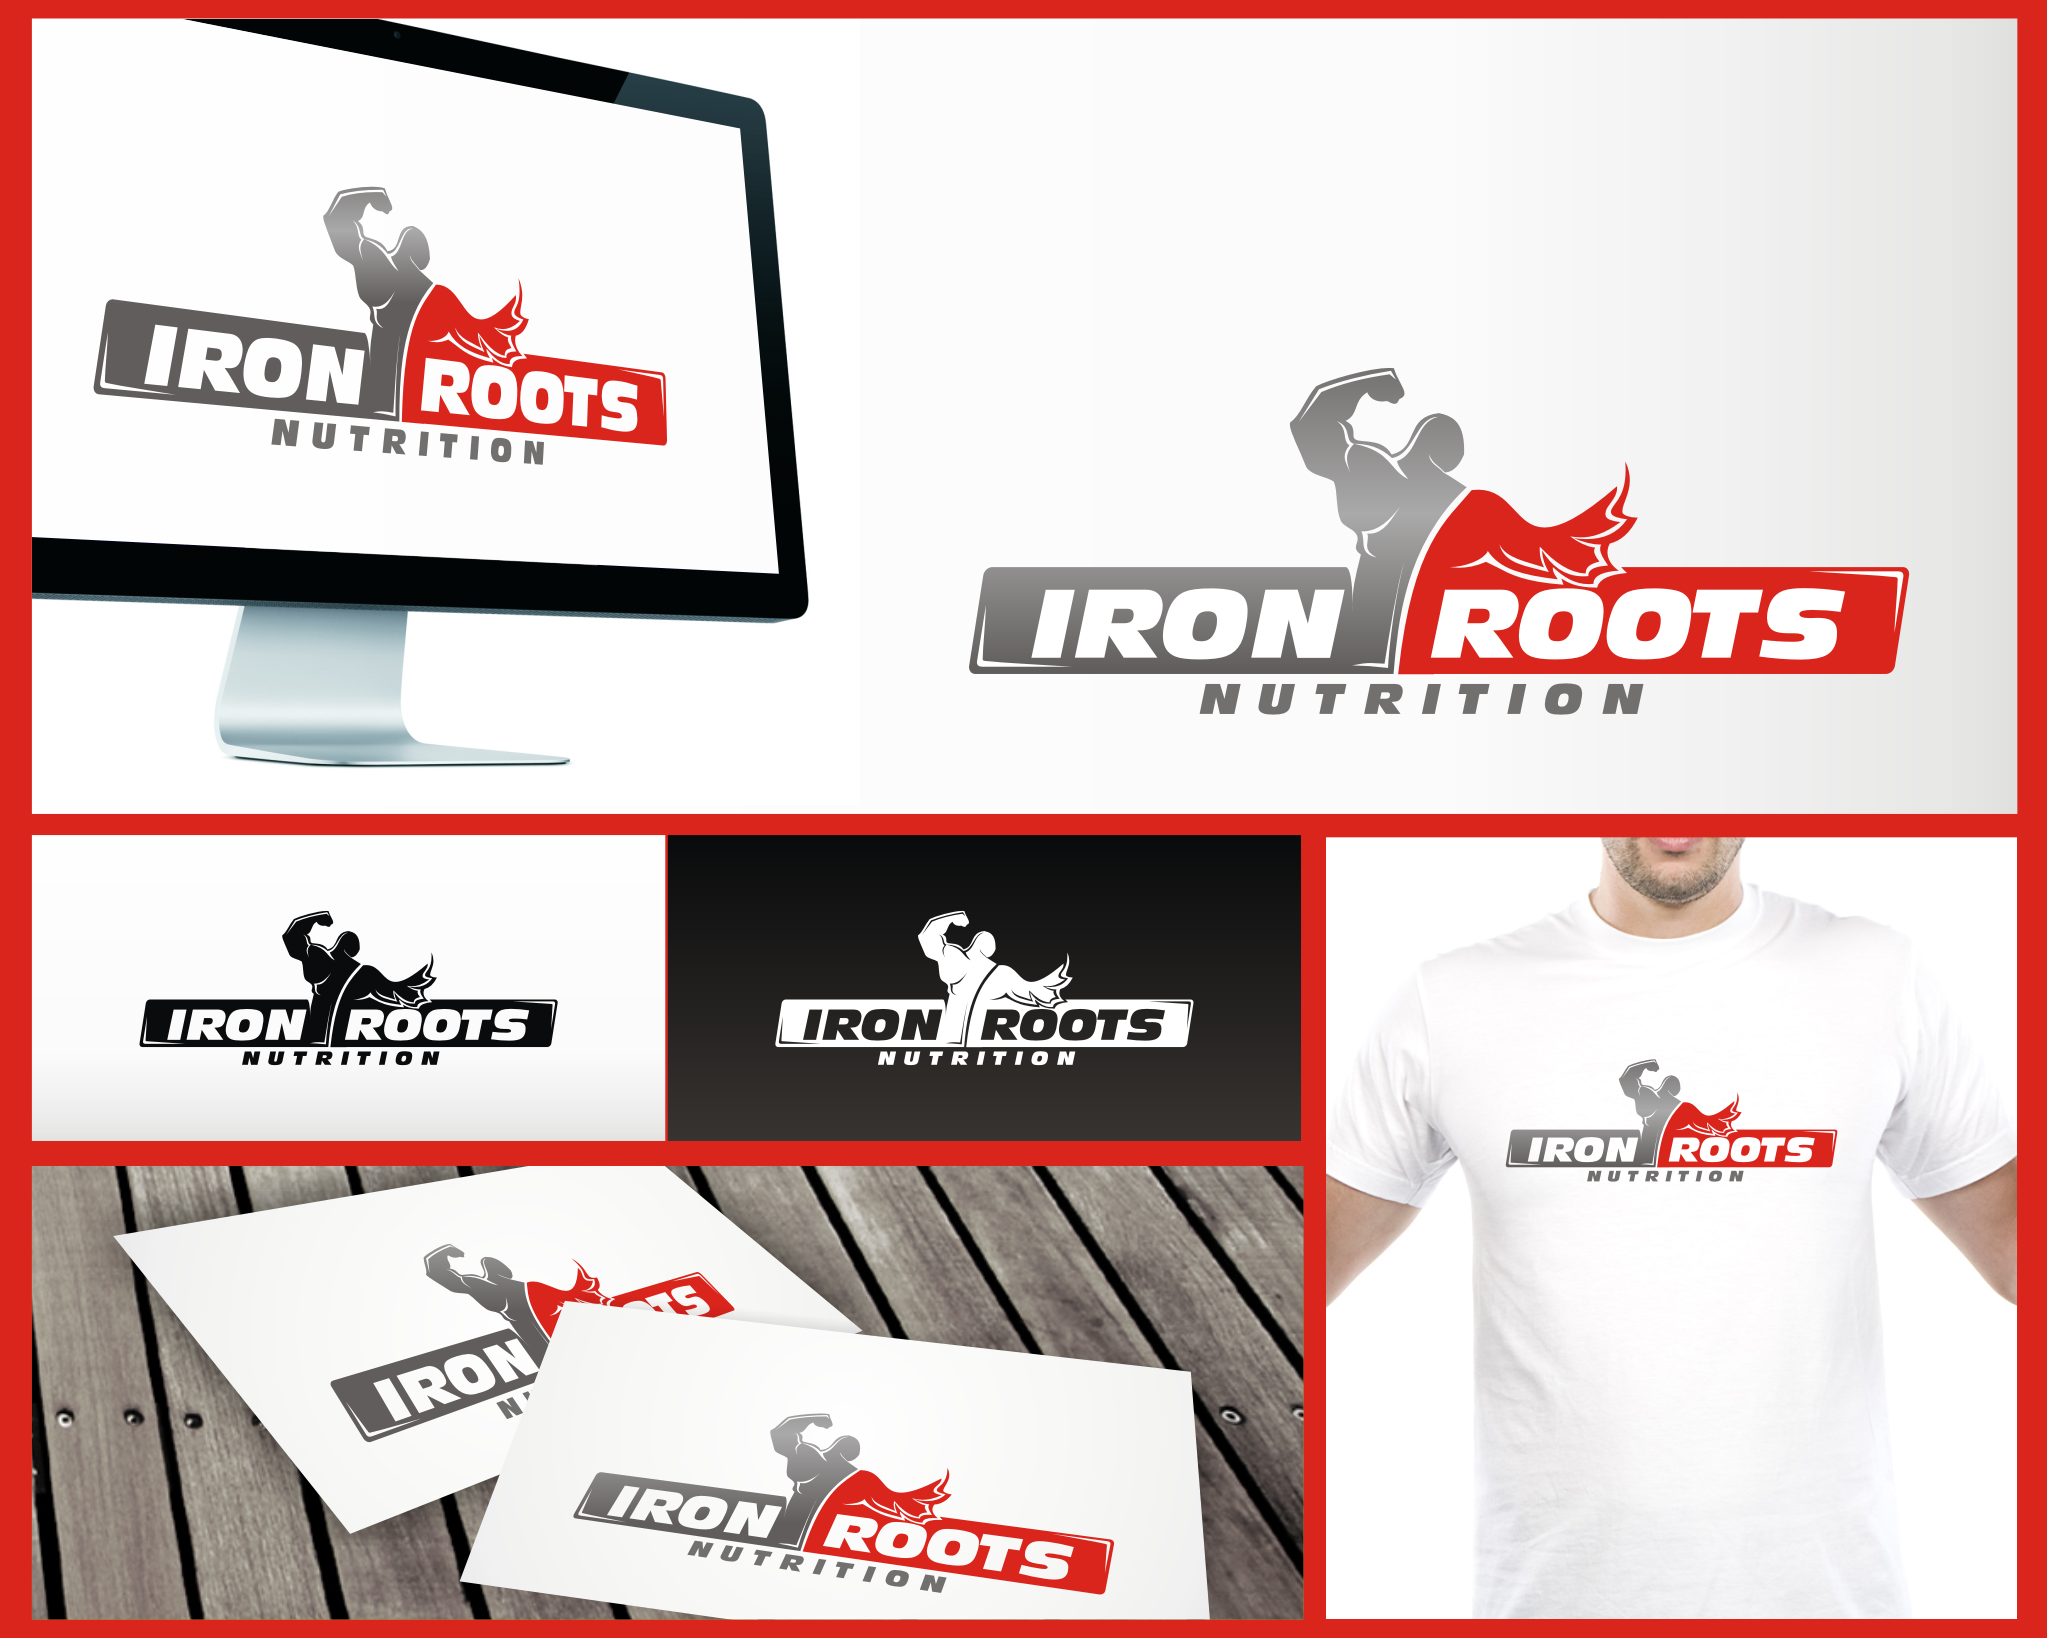 Iron Roots Nutrition needs a new logo